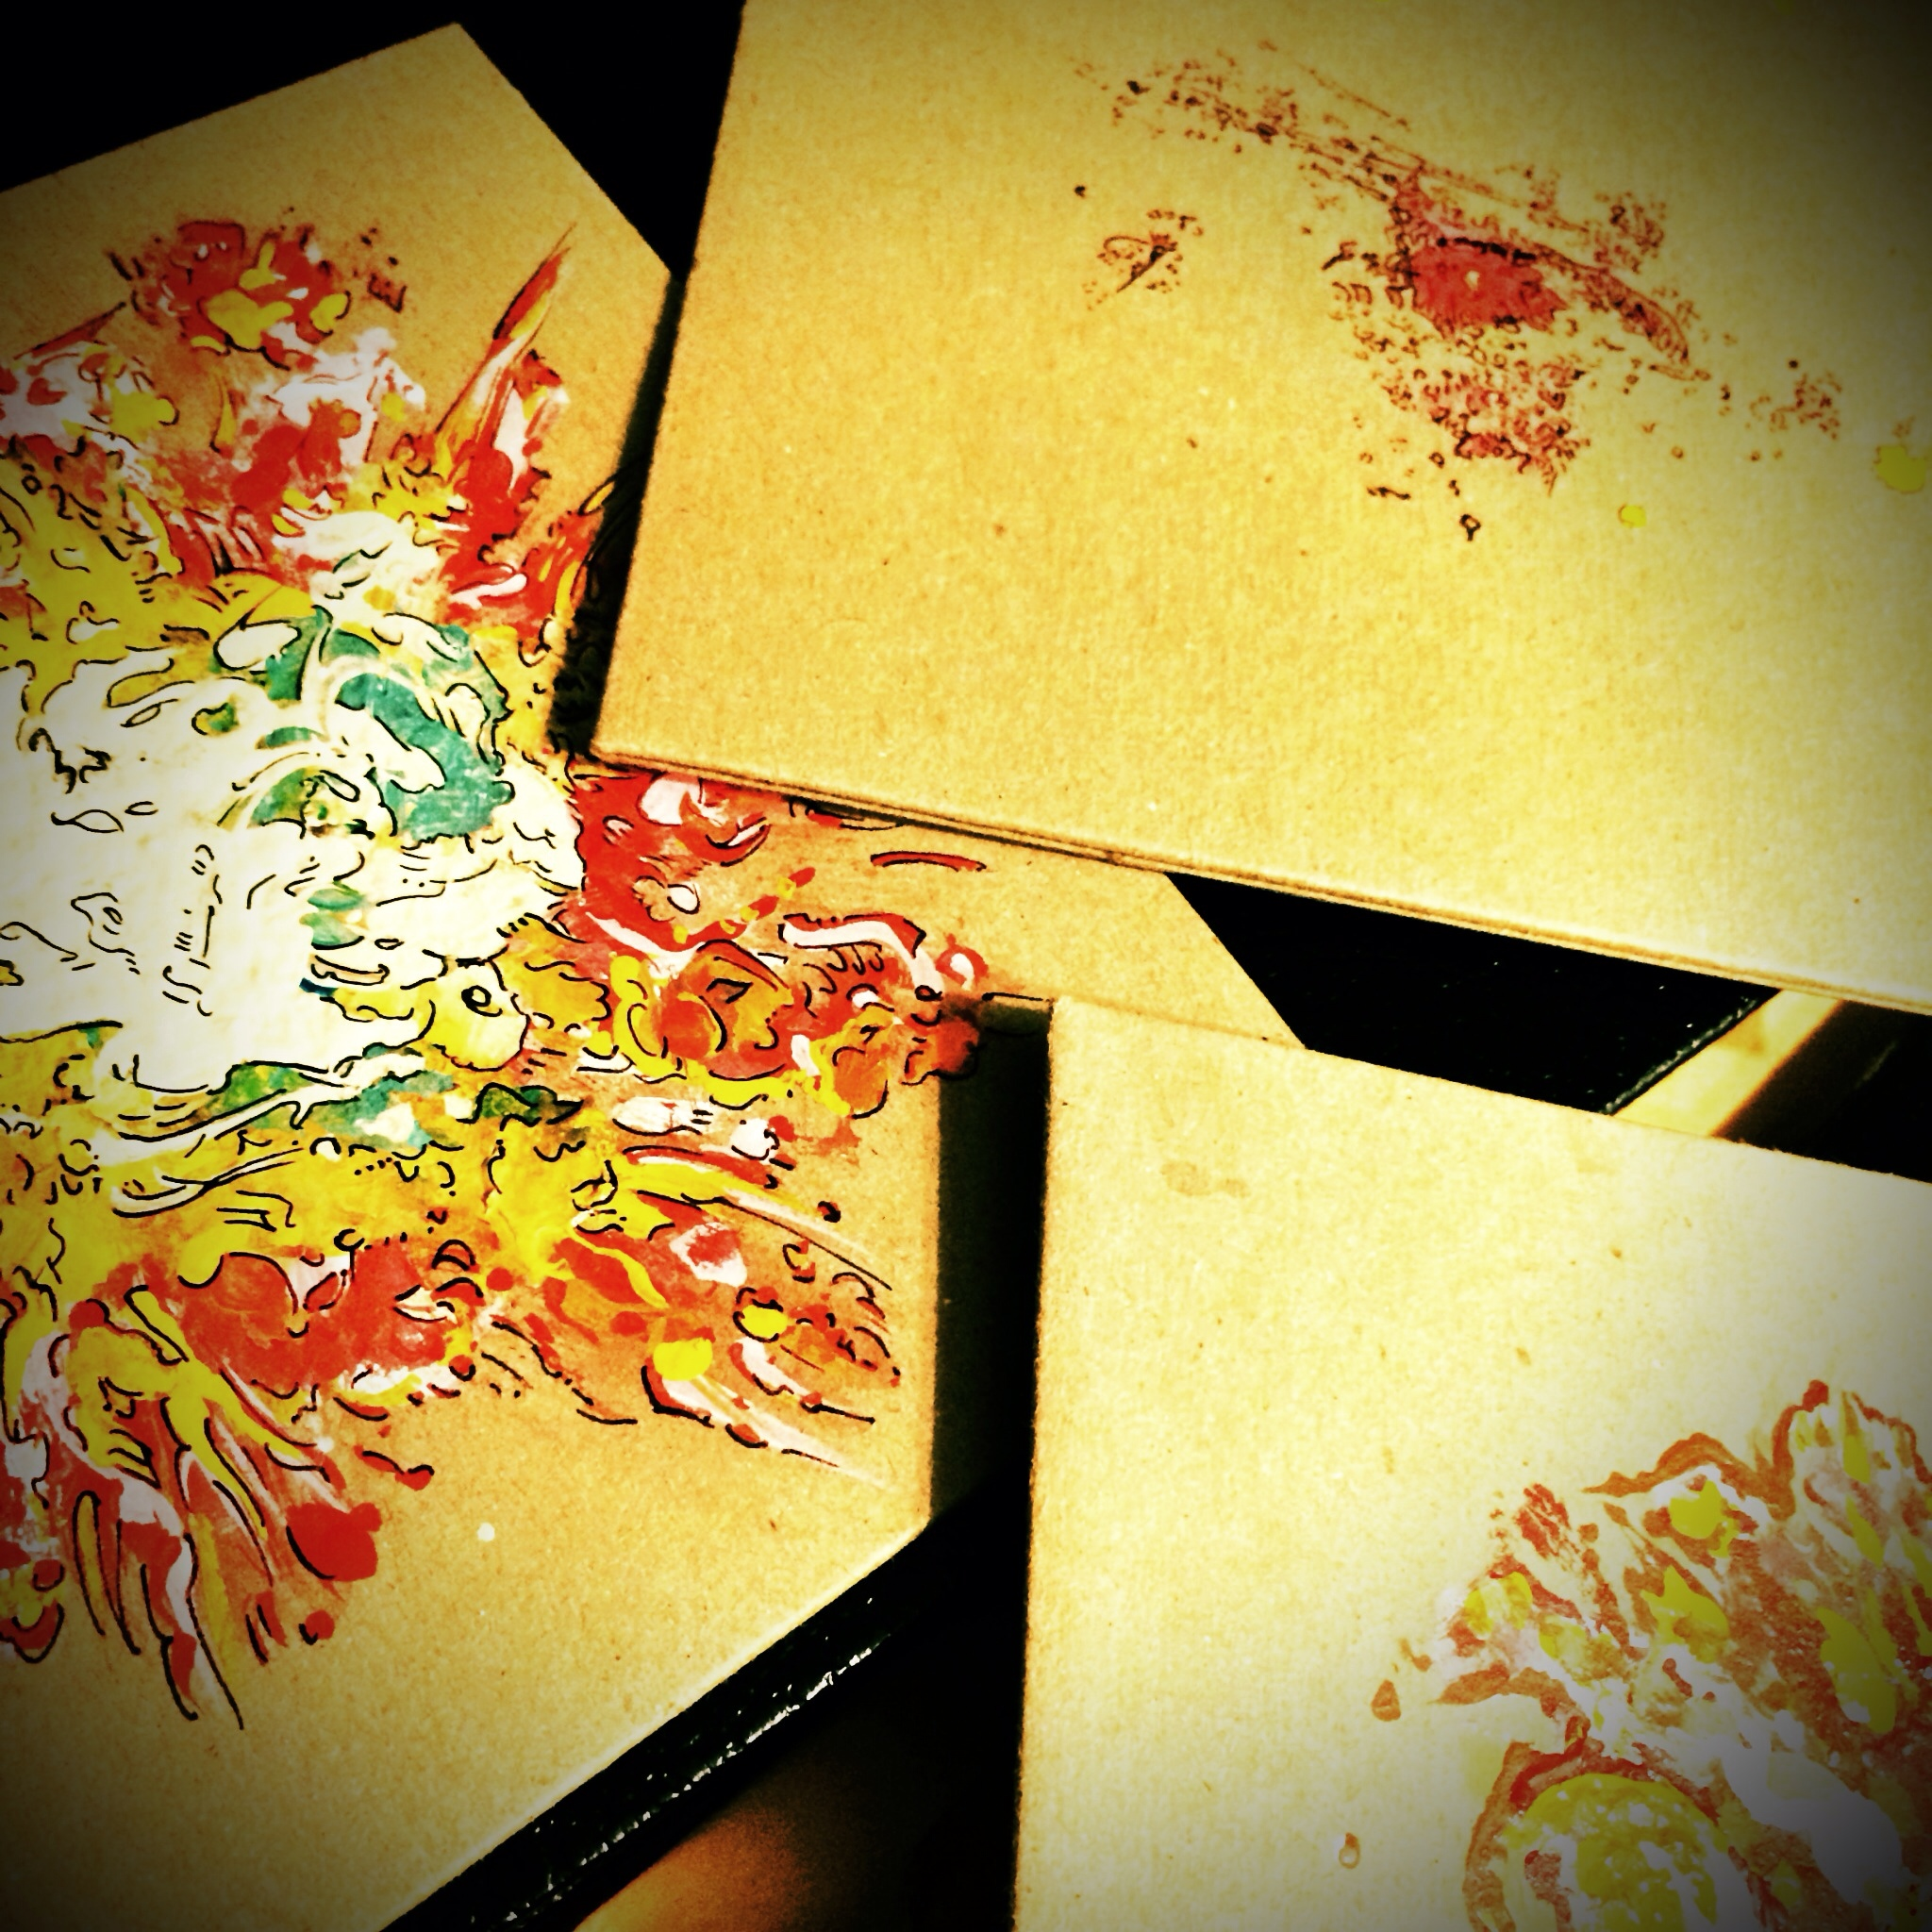 Limited Ed CD Covers In Progress (2013). These hand painted one of a kind CD sleeves started one afternoon in Houston, Texas, when I decided I just wanted to paint something for myself while hanging out in the hotel room before the gig that night. All I had was a dozen of these brown recycled sleeves so I grabbed one and started in. Well, at that moment in walked Truckee Brother Christopher Hoffee and Steve Poltz who wanted to finger paint too so we all tucked in and painted the afternoon away. We had made so many that night we offered them for sale at the gig. Wouldn't you know it, they sold out, and I've been painting them ever since.